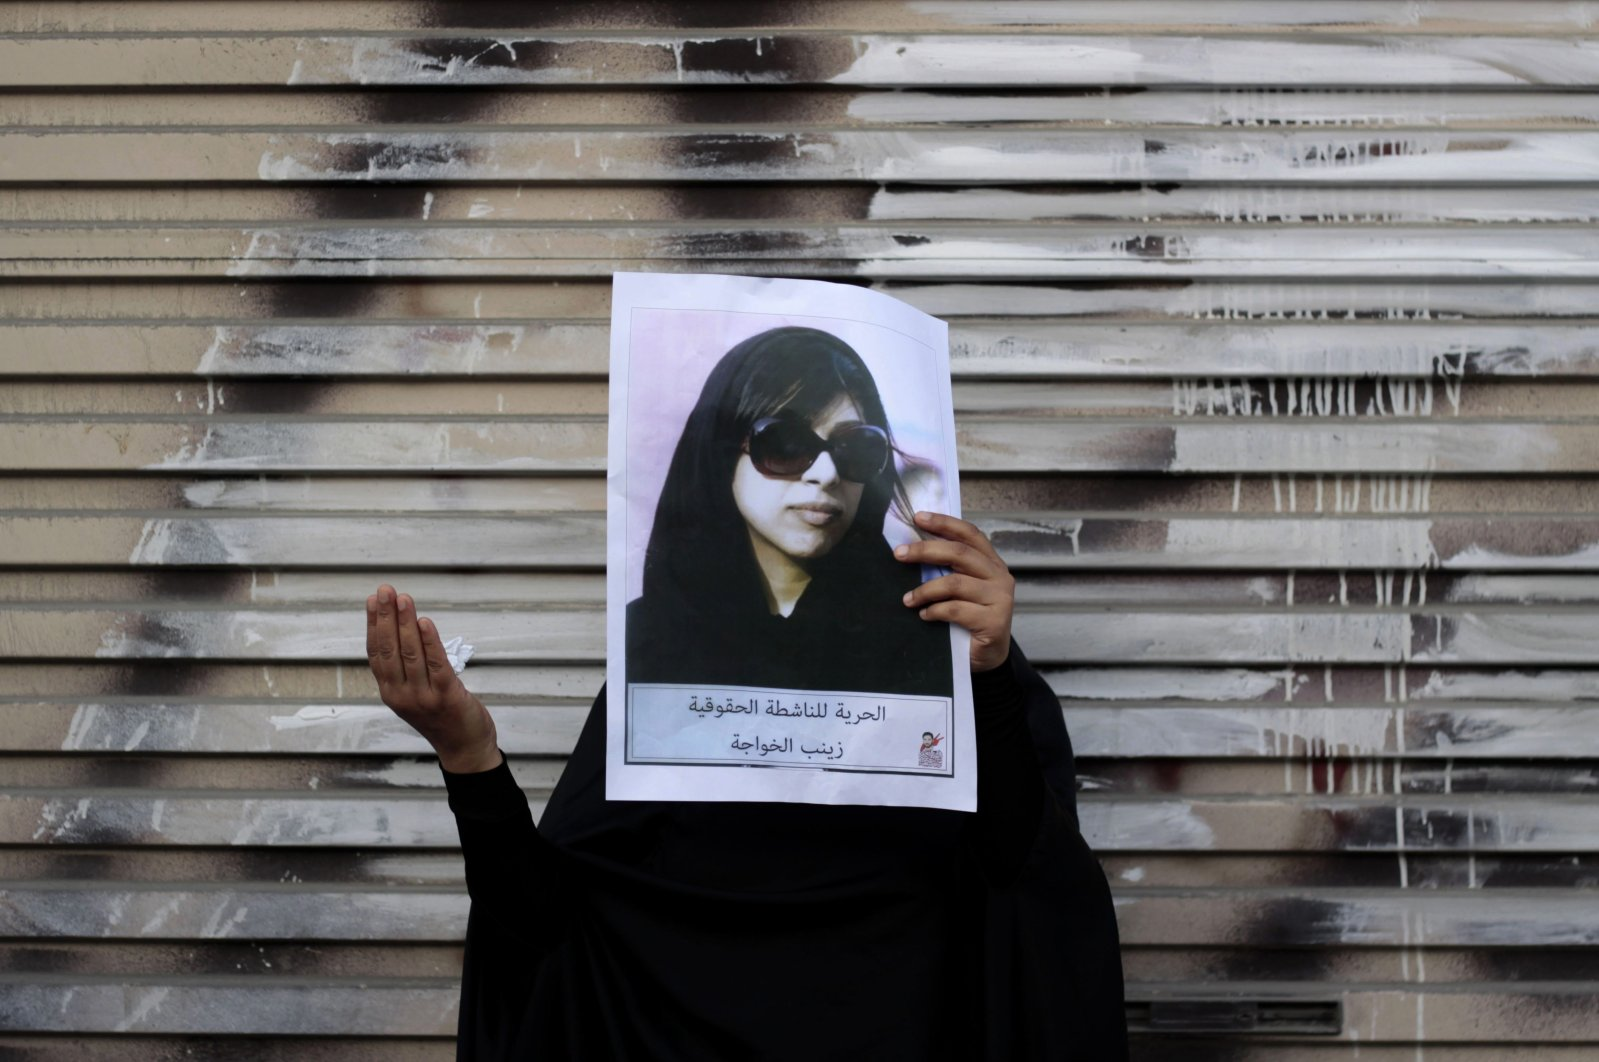 In this March 28, 2013 file photo, a Bahraini anti-government protester holds up a picture of jailed opposition human rights activist Zainab al-Khawaja as she participates in a prayer for al-Khawaja's freedom after a march in Malkiya, Bahrain.  April 16, 2015. (AP Photo)